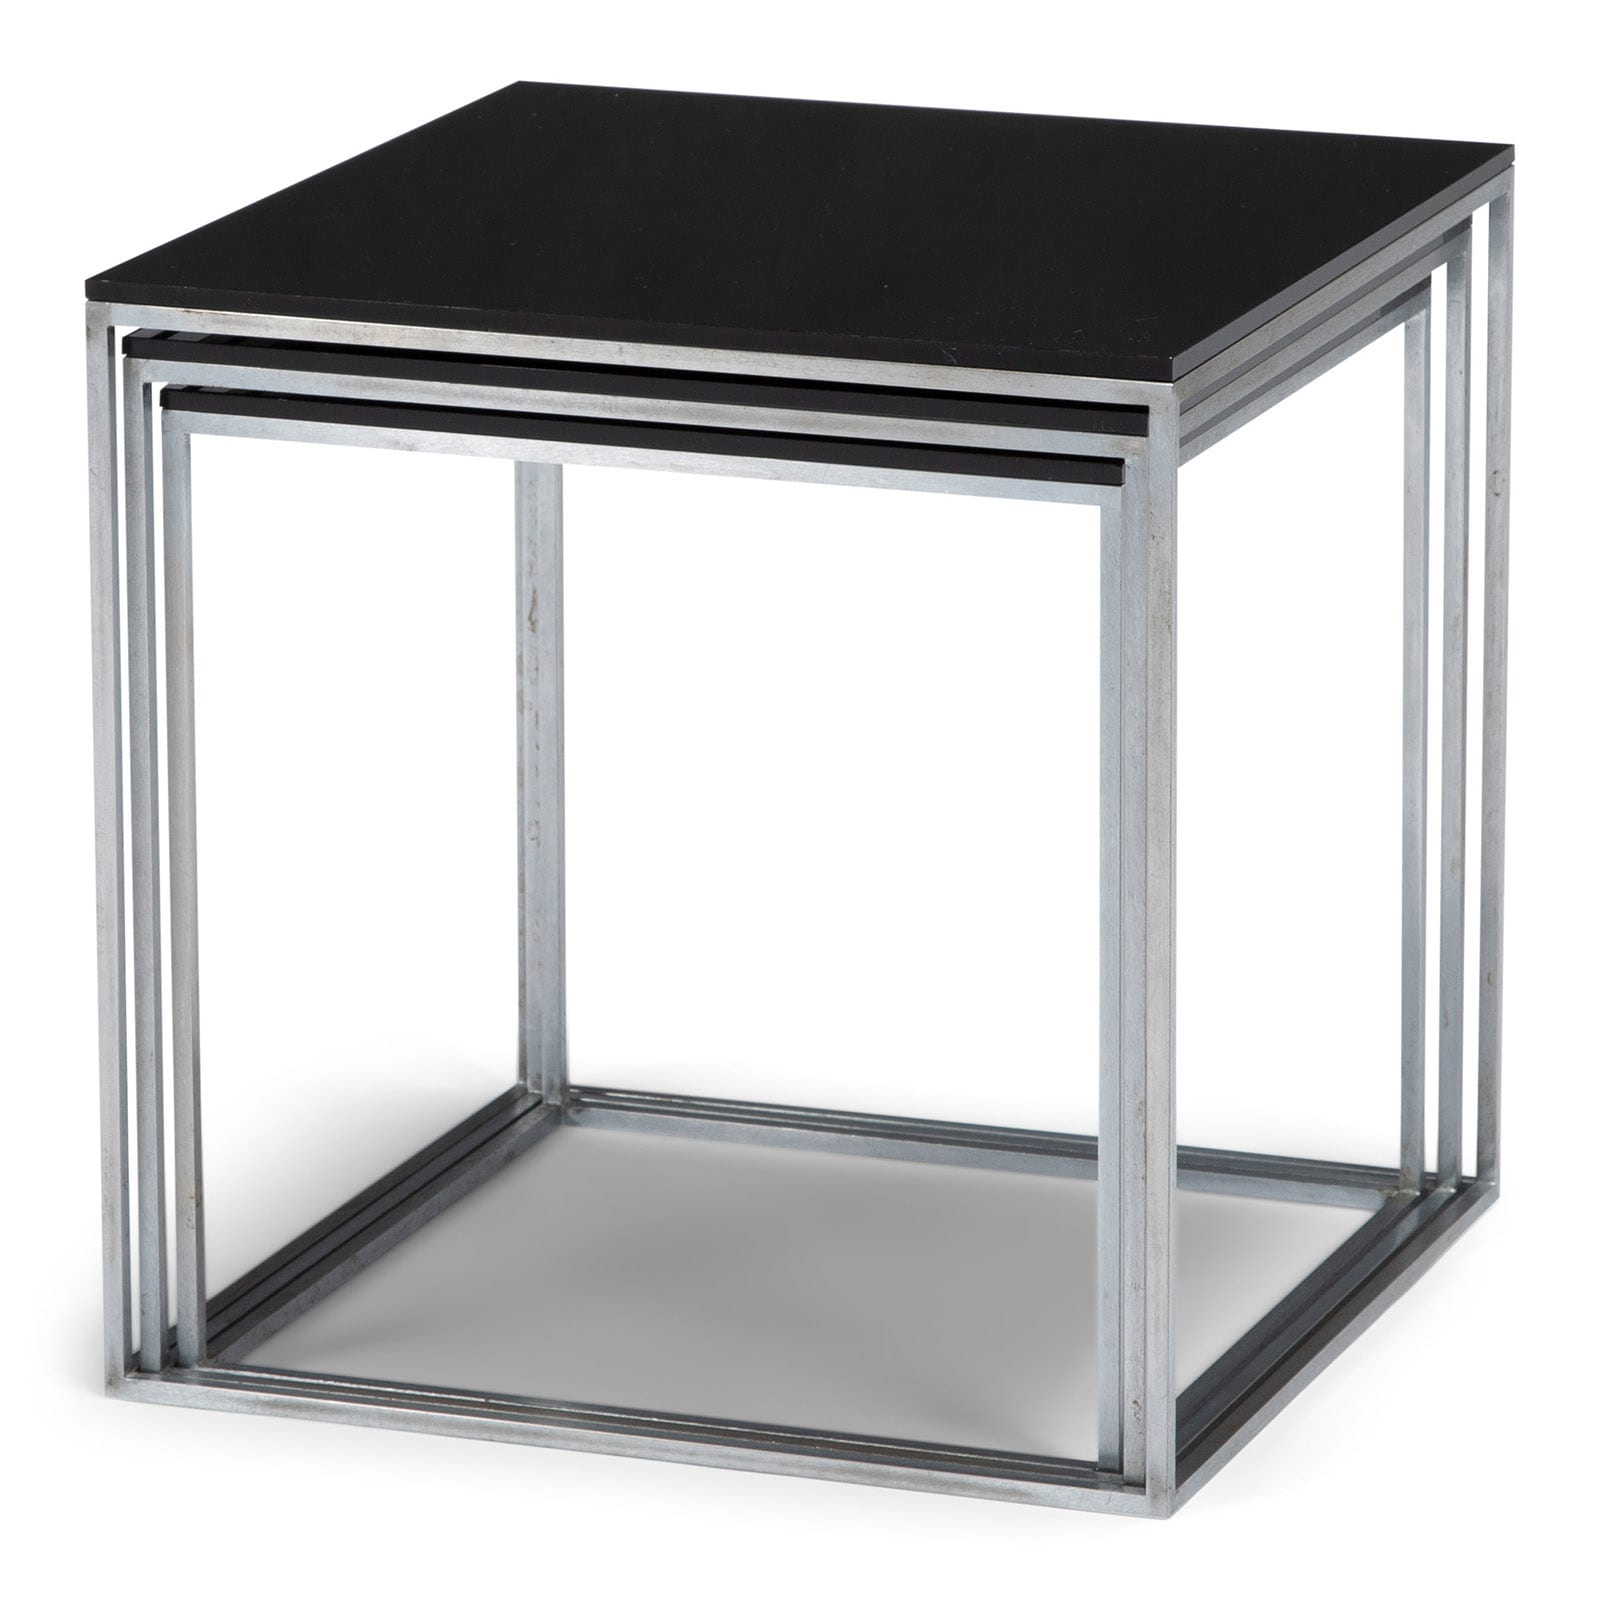 A PK71 nesting table